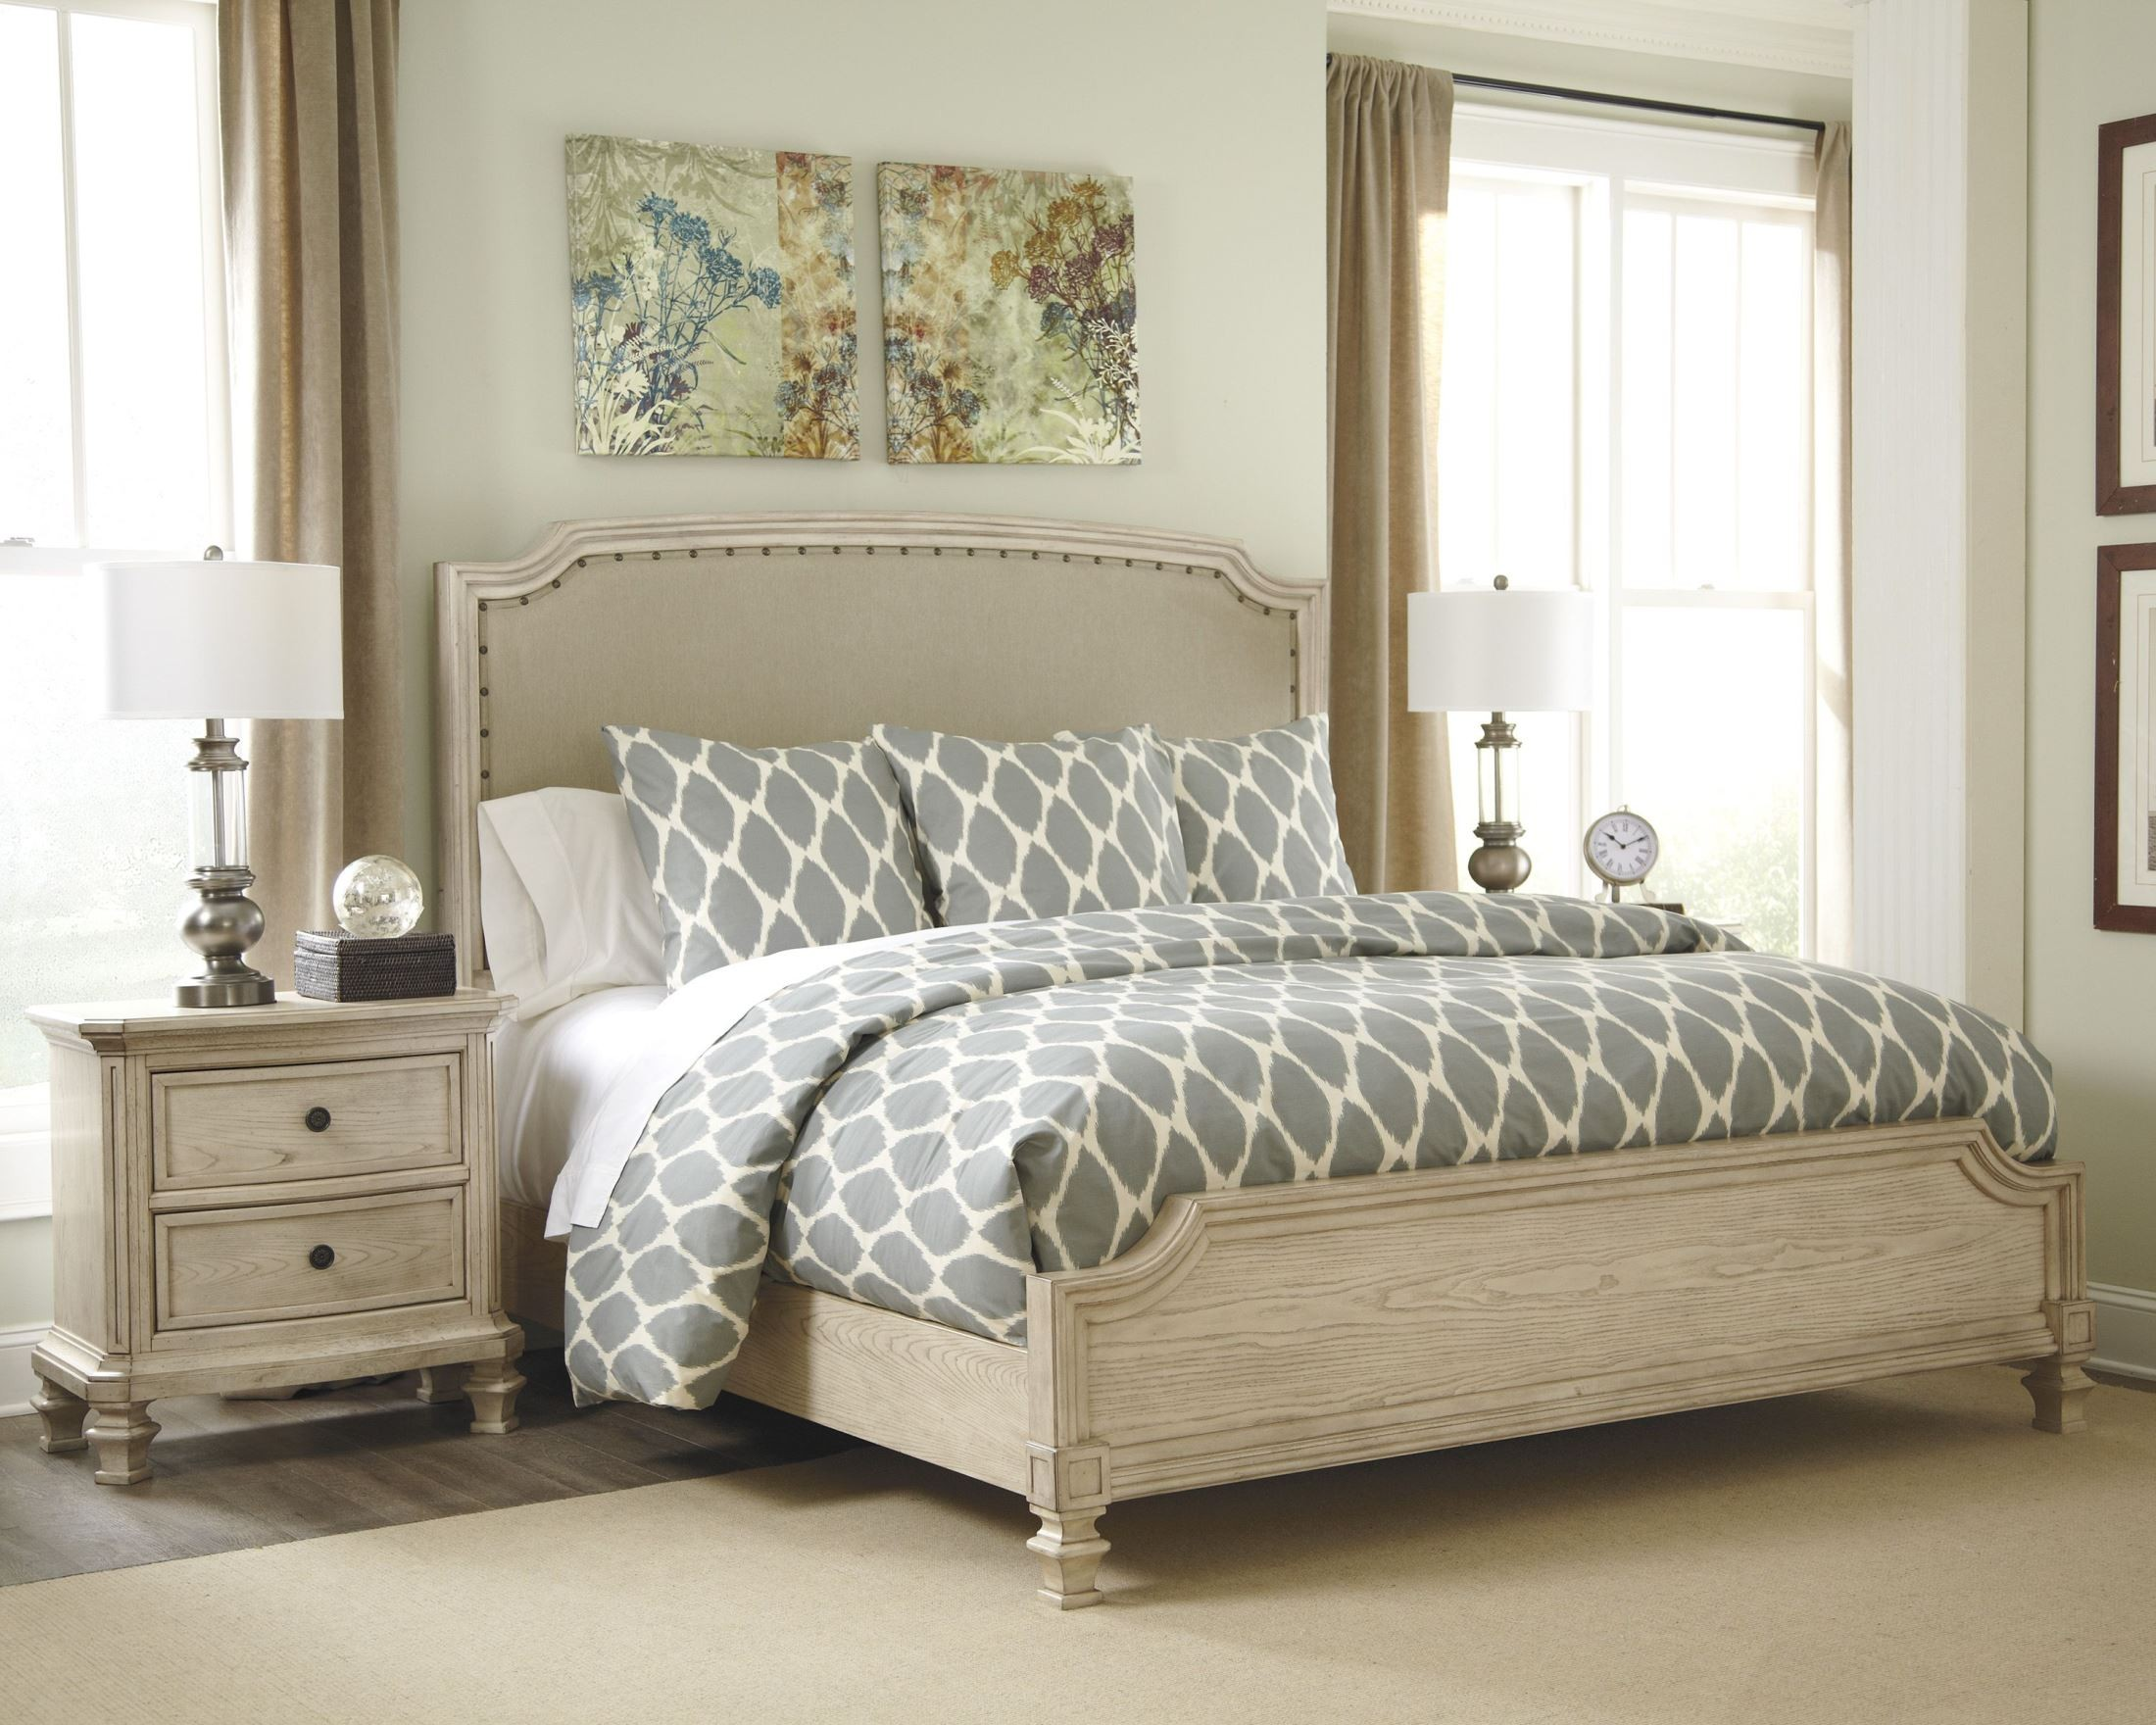 Demarlos cal king upholstered panel bed from ashley b693 76 78 94 coleman furniture for Demarlos upholstered panel bedroom set